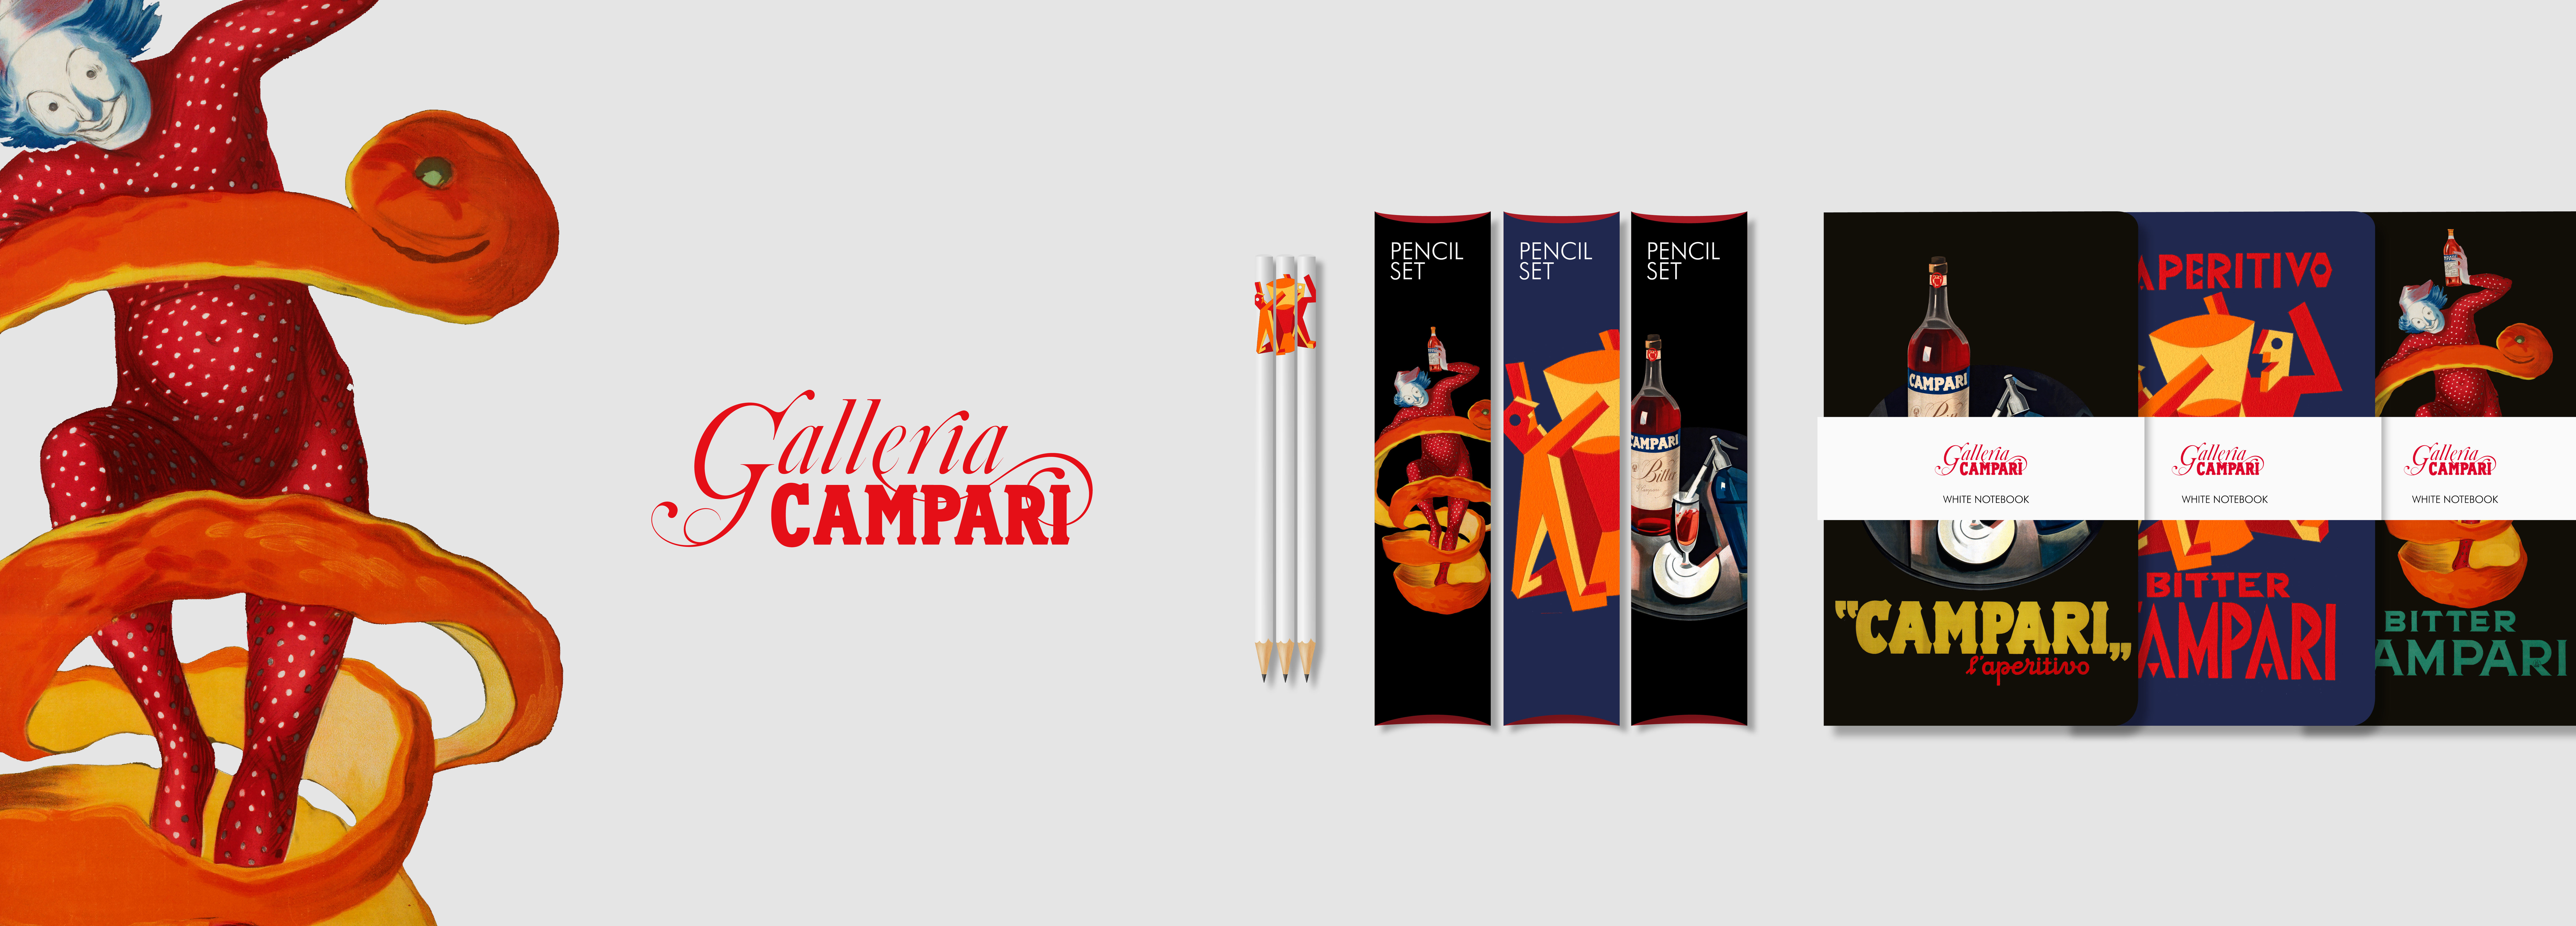 Campari - Galleria Campari<br>The Art of Merchandising